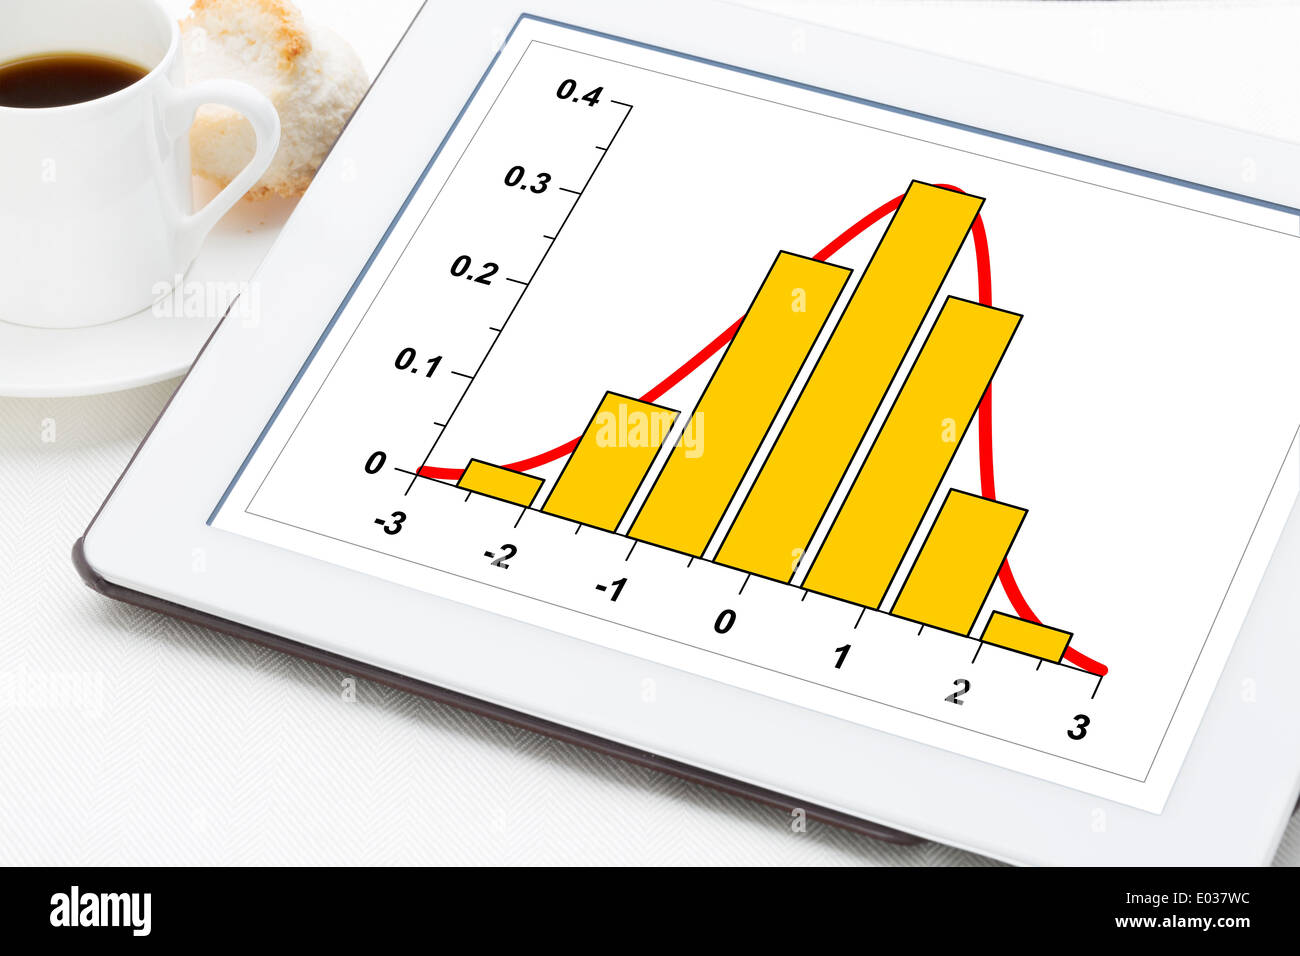 graph of data histogram Gaussian distribution on a digital tablet - Stock Image